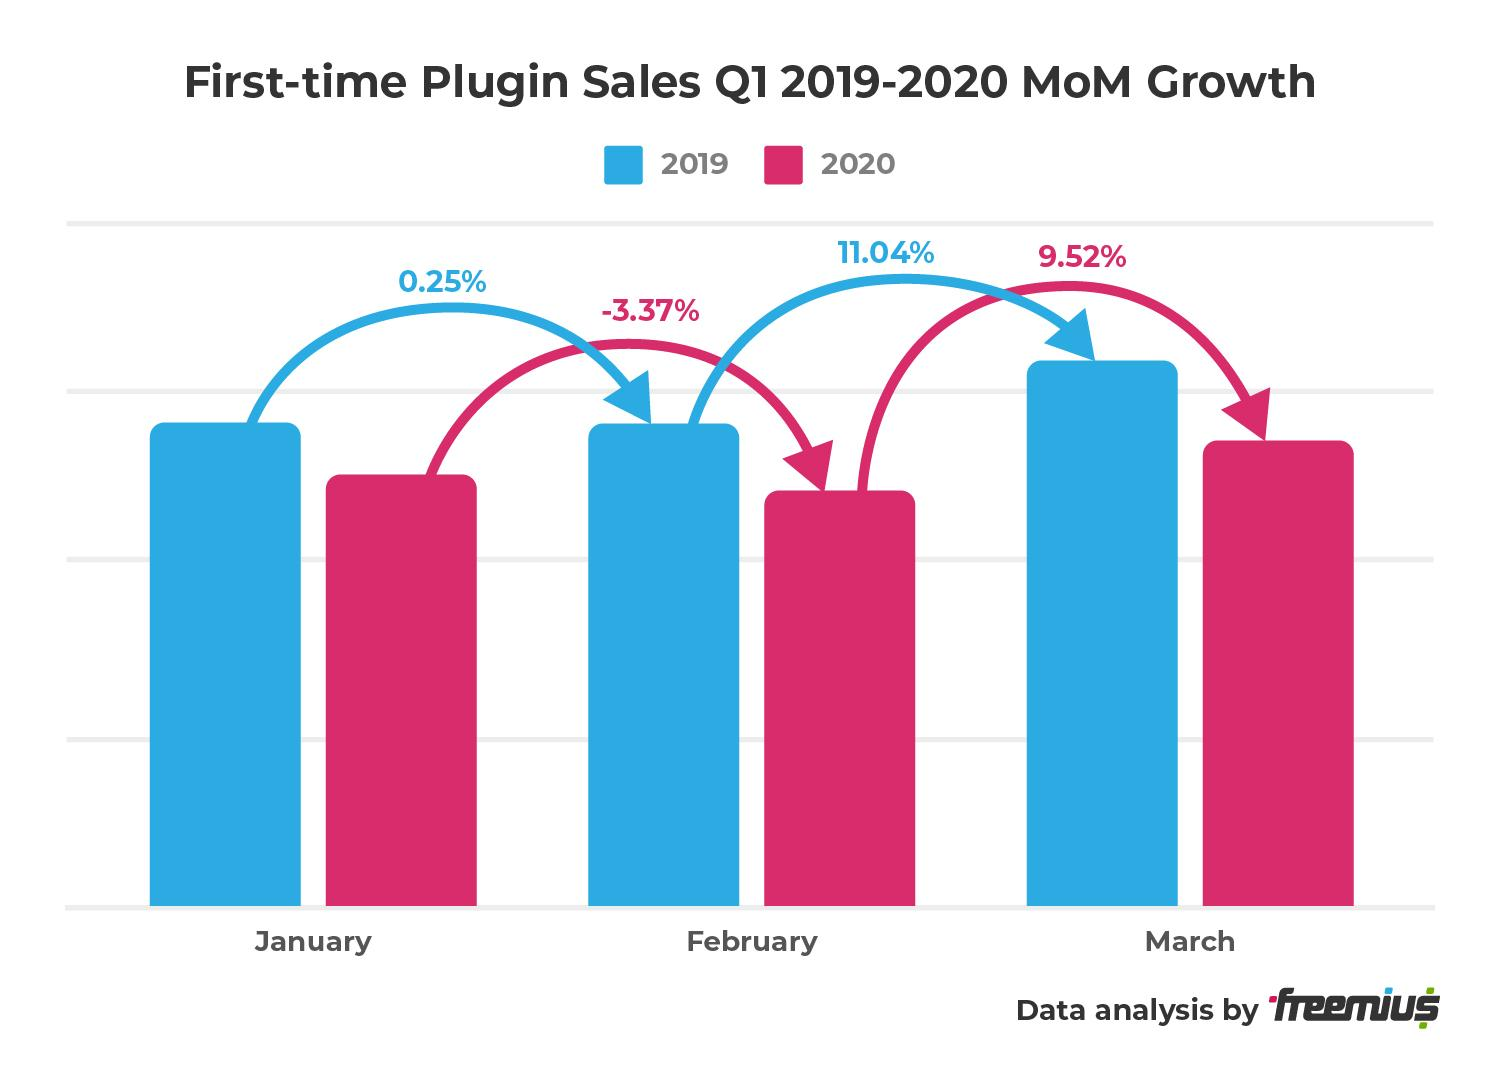 Freemius data analysis - First-time Plugin Sales Q1 2019-2020 MoM Growth